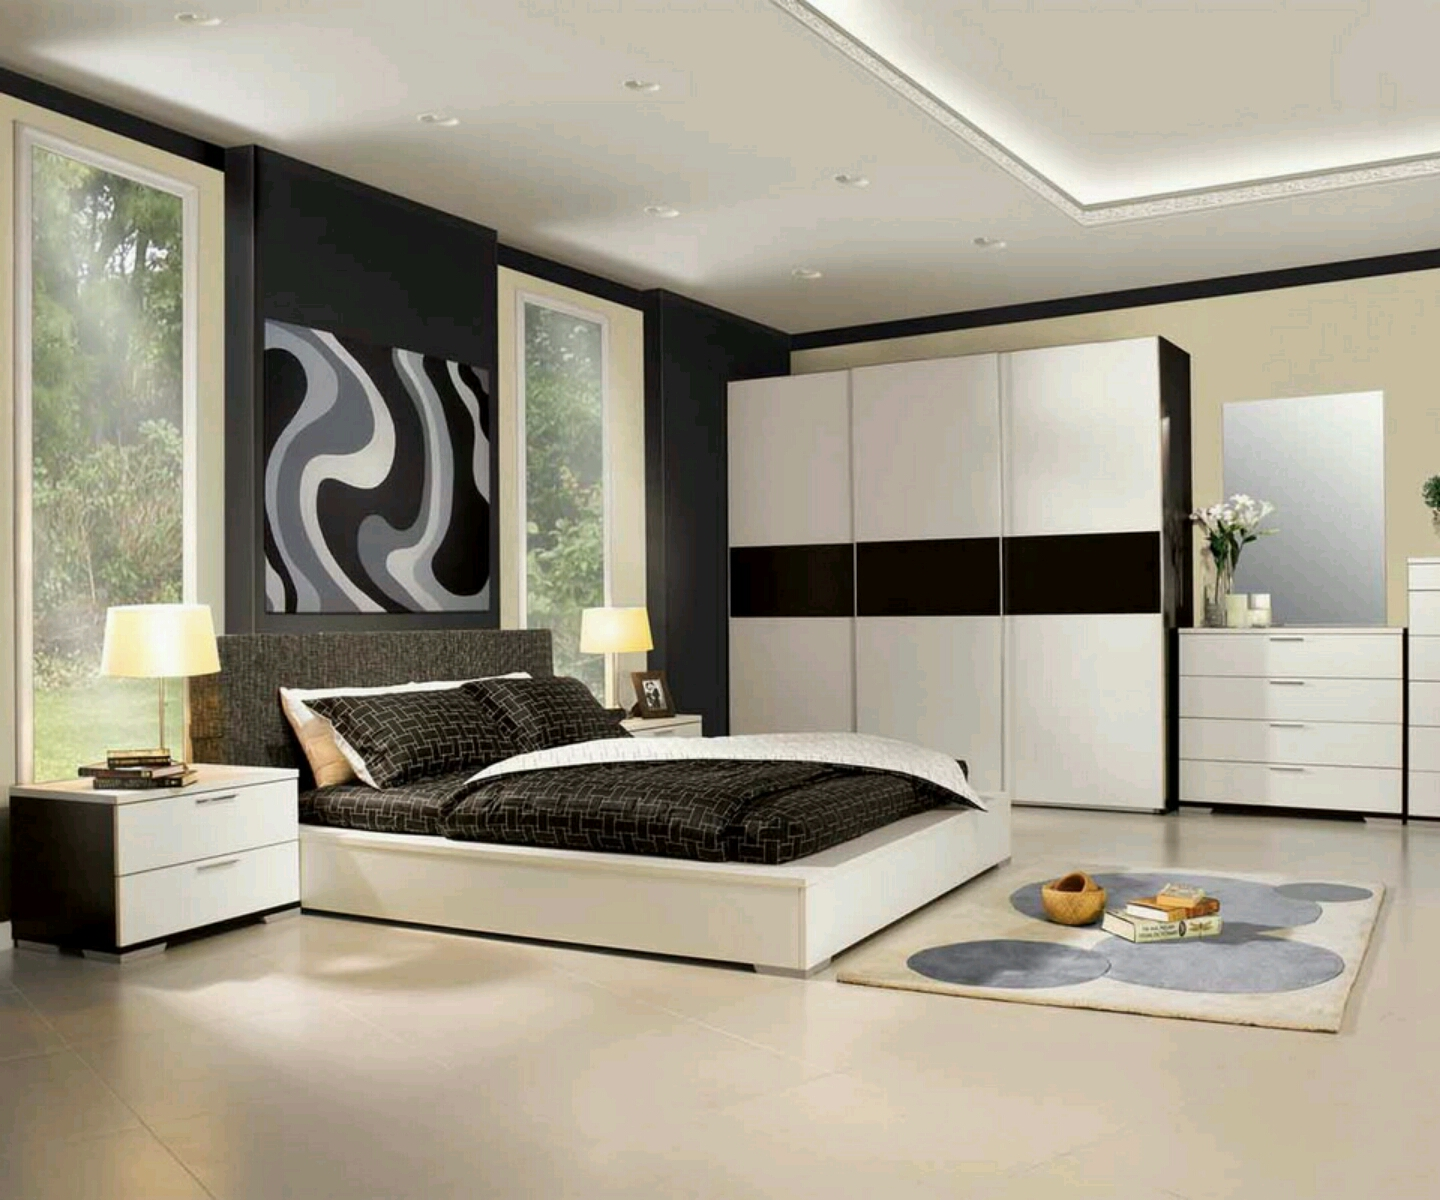 Luxury master bedroom furniture playboy playmates my for Modern master bedroom designs 2014